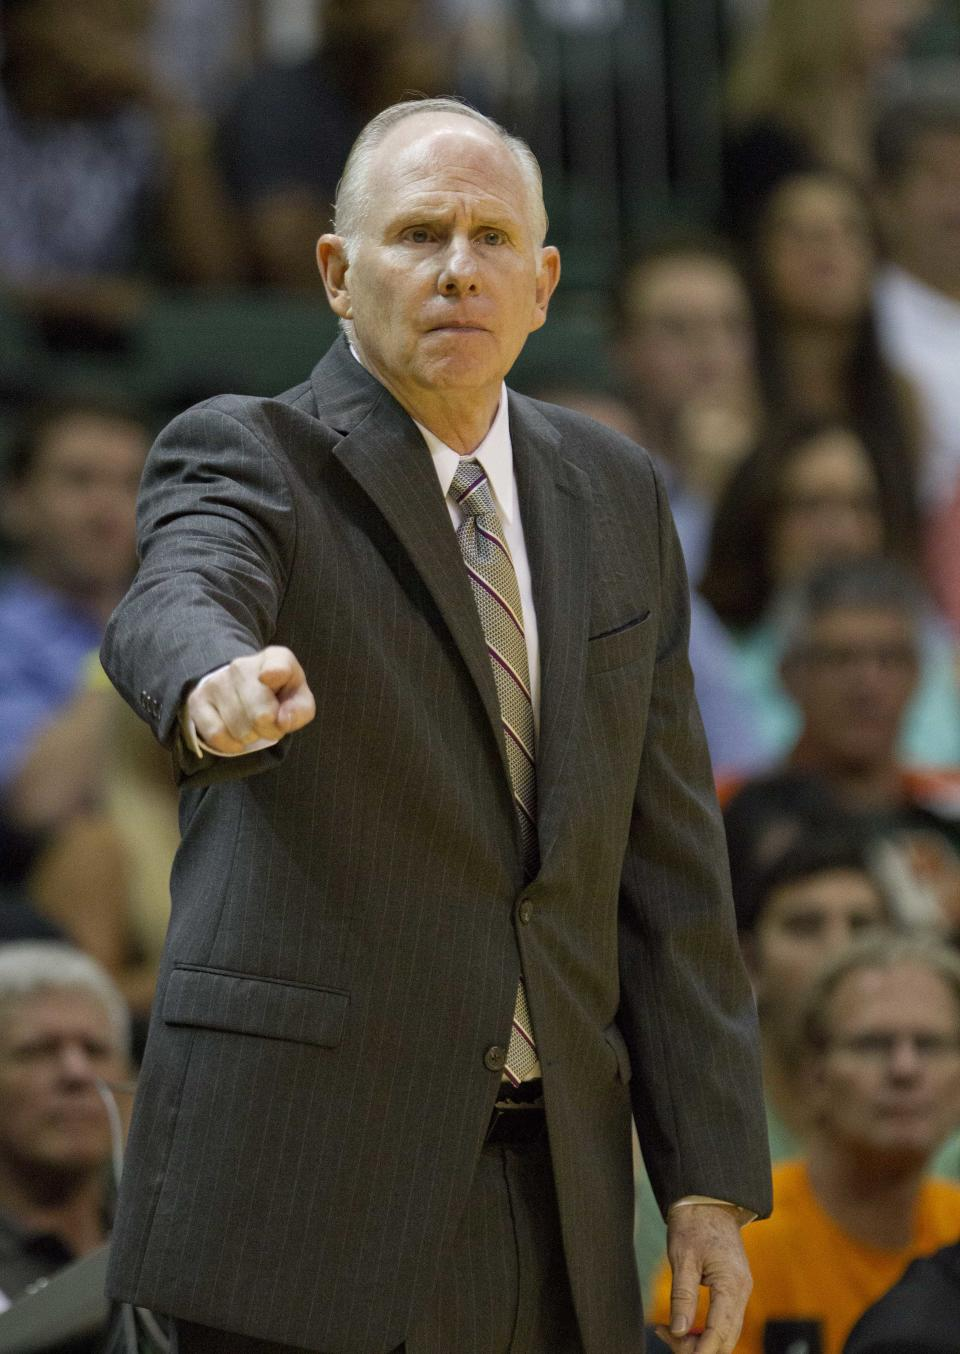 Miami head coach Jim Larranaga gestures to players during the first half of an NCAA college basketball game against Illinois, Tuesday, Dec. 2, 2014 in Coral Gables, Fla. (AP Photo/Wilfredo Lee)